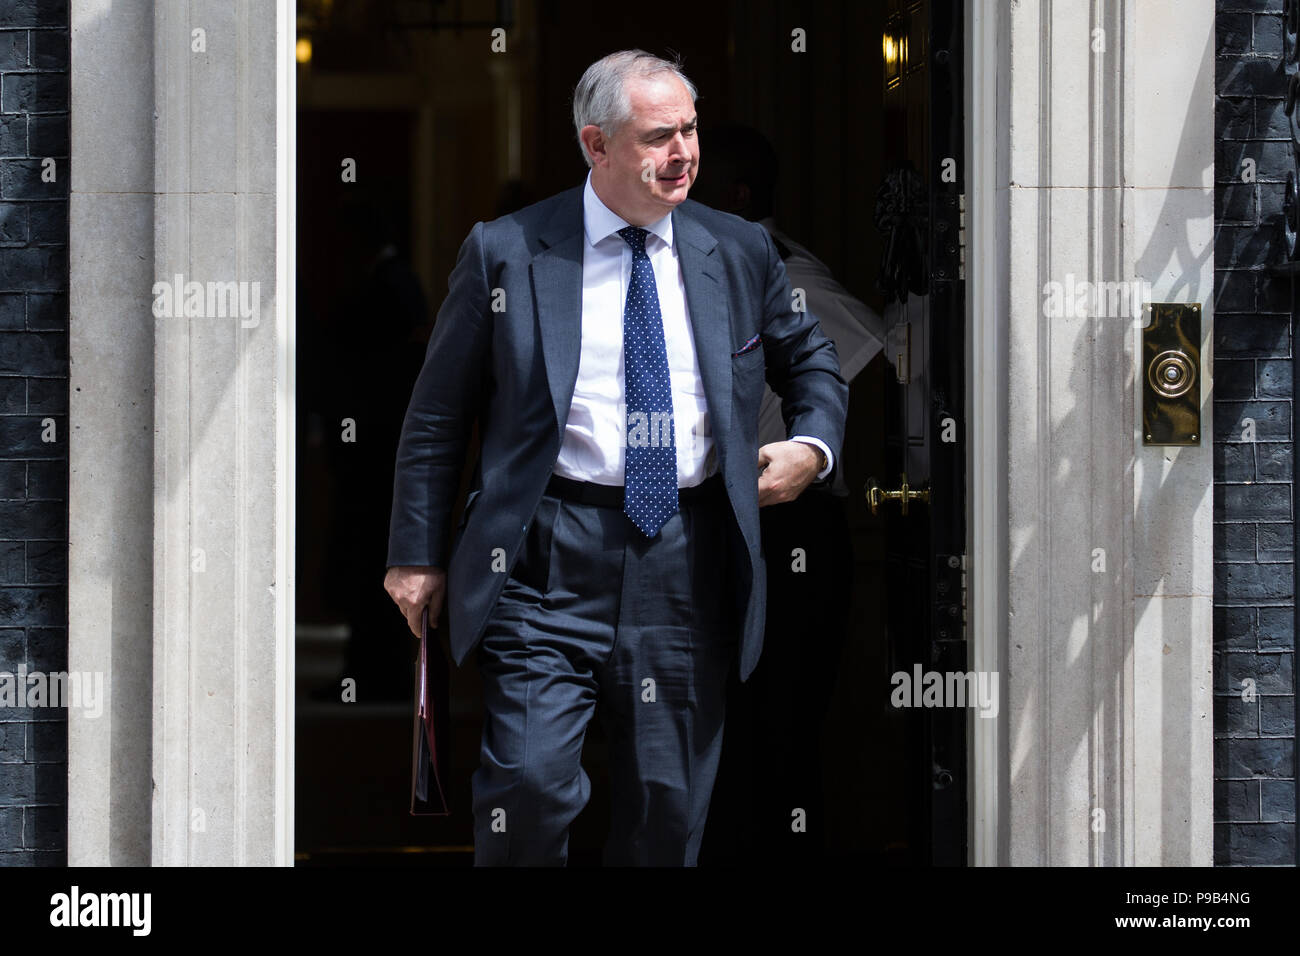 London, UK. 17th July, 2018. Geoffrey Cox QC MP, Attorney General,  leaves 10 Downing Street following the final Cabinet meeting before the summer recess. Credit: Mark Kerrison/Alamy Live News - Stock Image